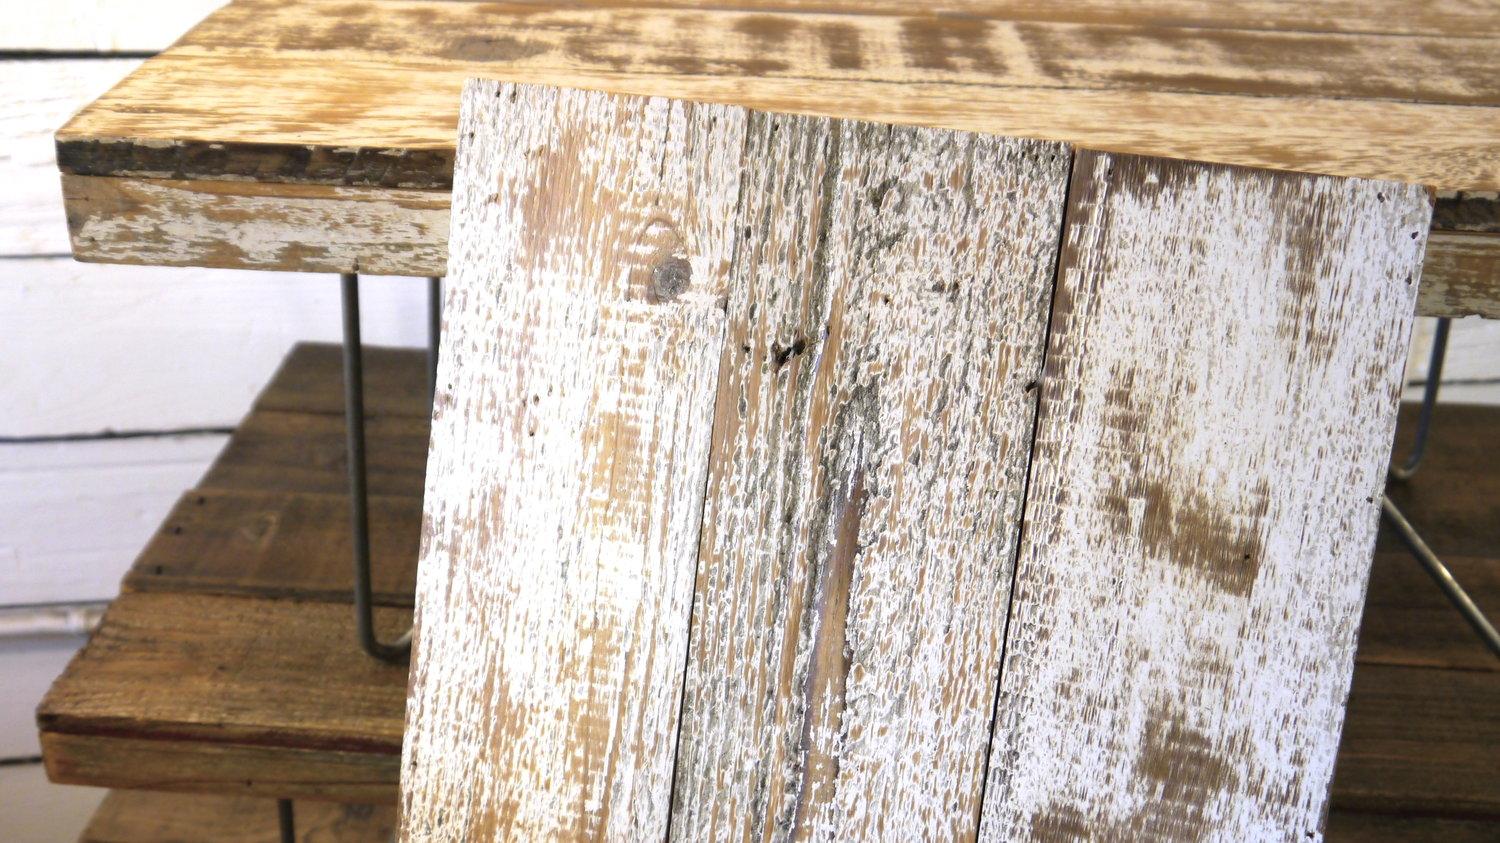 perfect and sofas dressers drawer dresser reclaimed beds cabinets diy rustic morecabinets wood